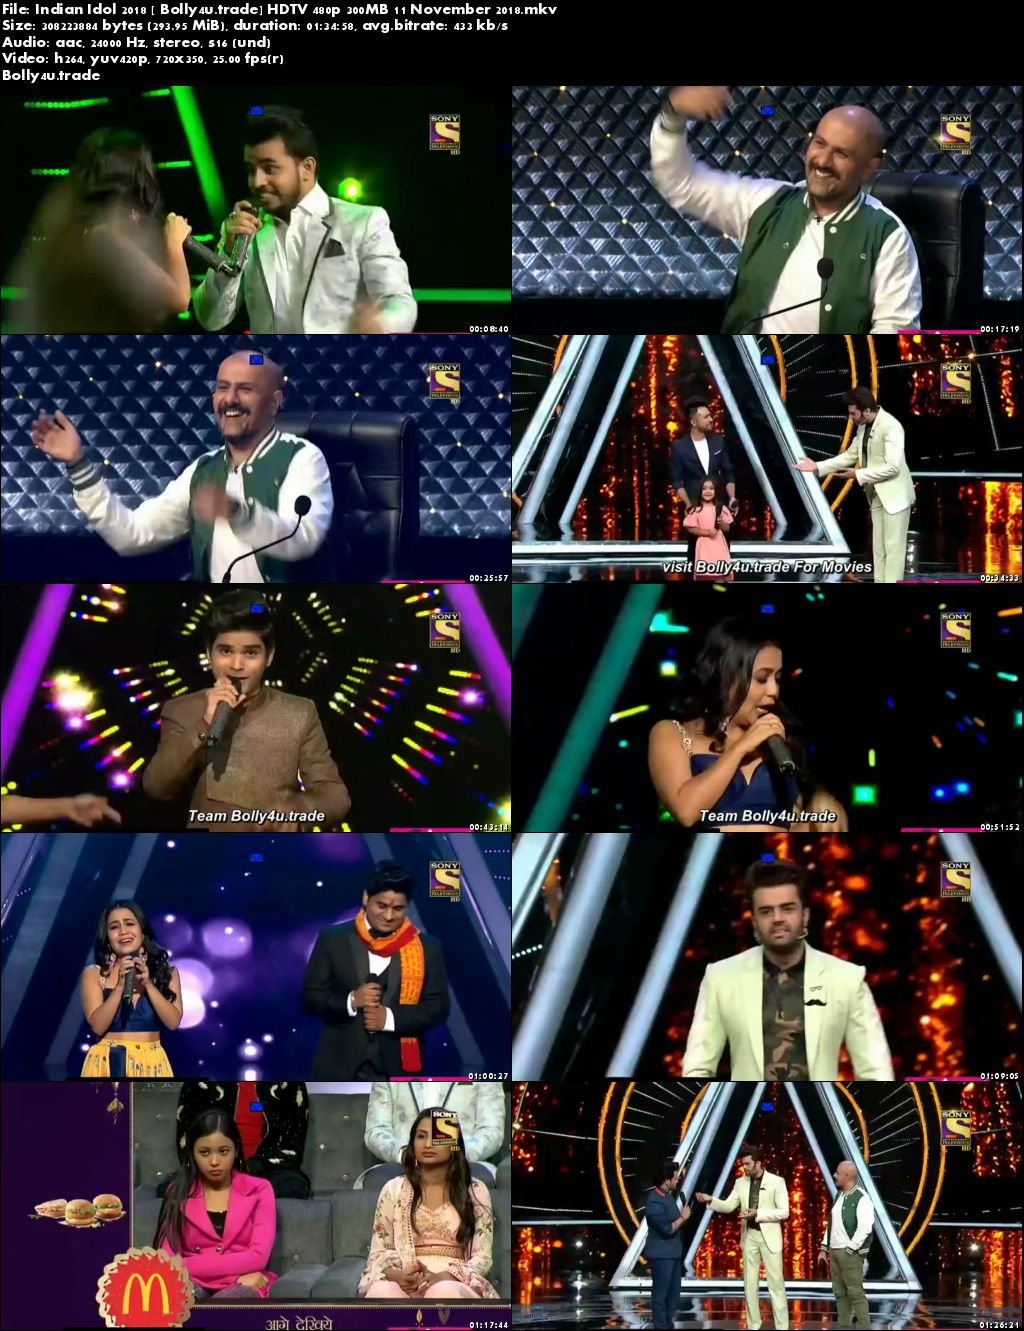 Indian Idol 2018 HDTV 480p 300MB 11 November 2018 Download